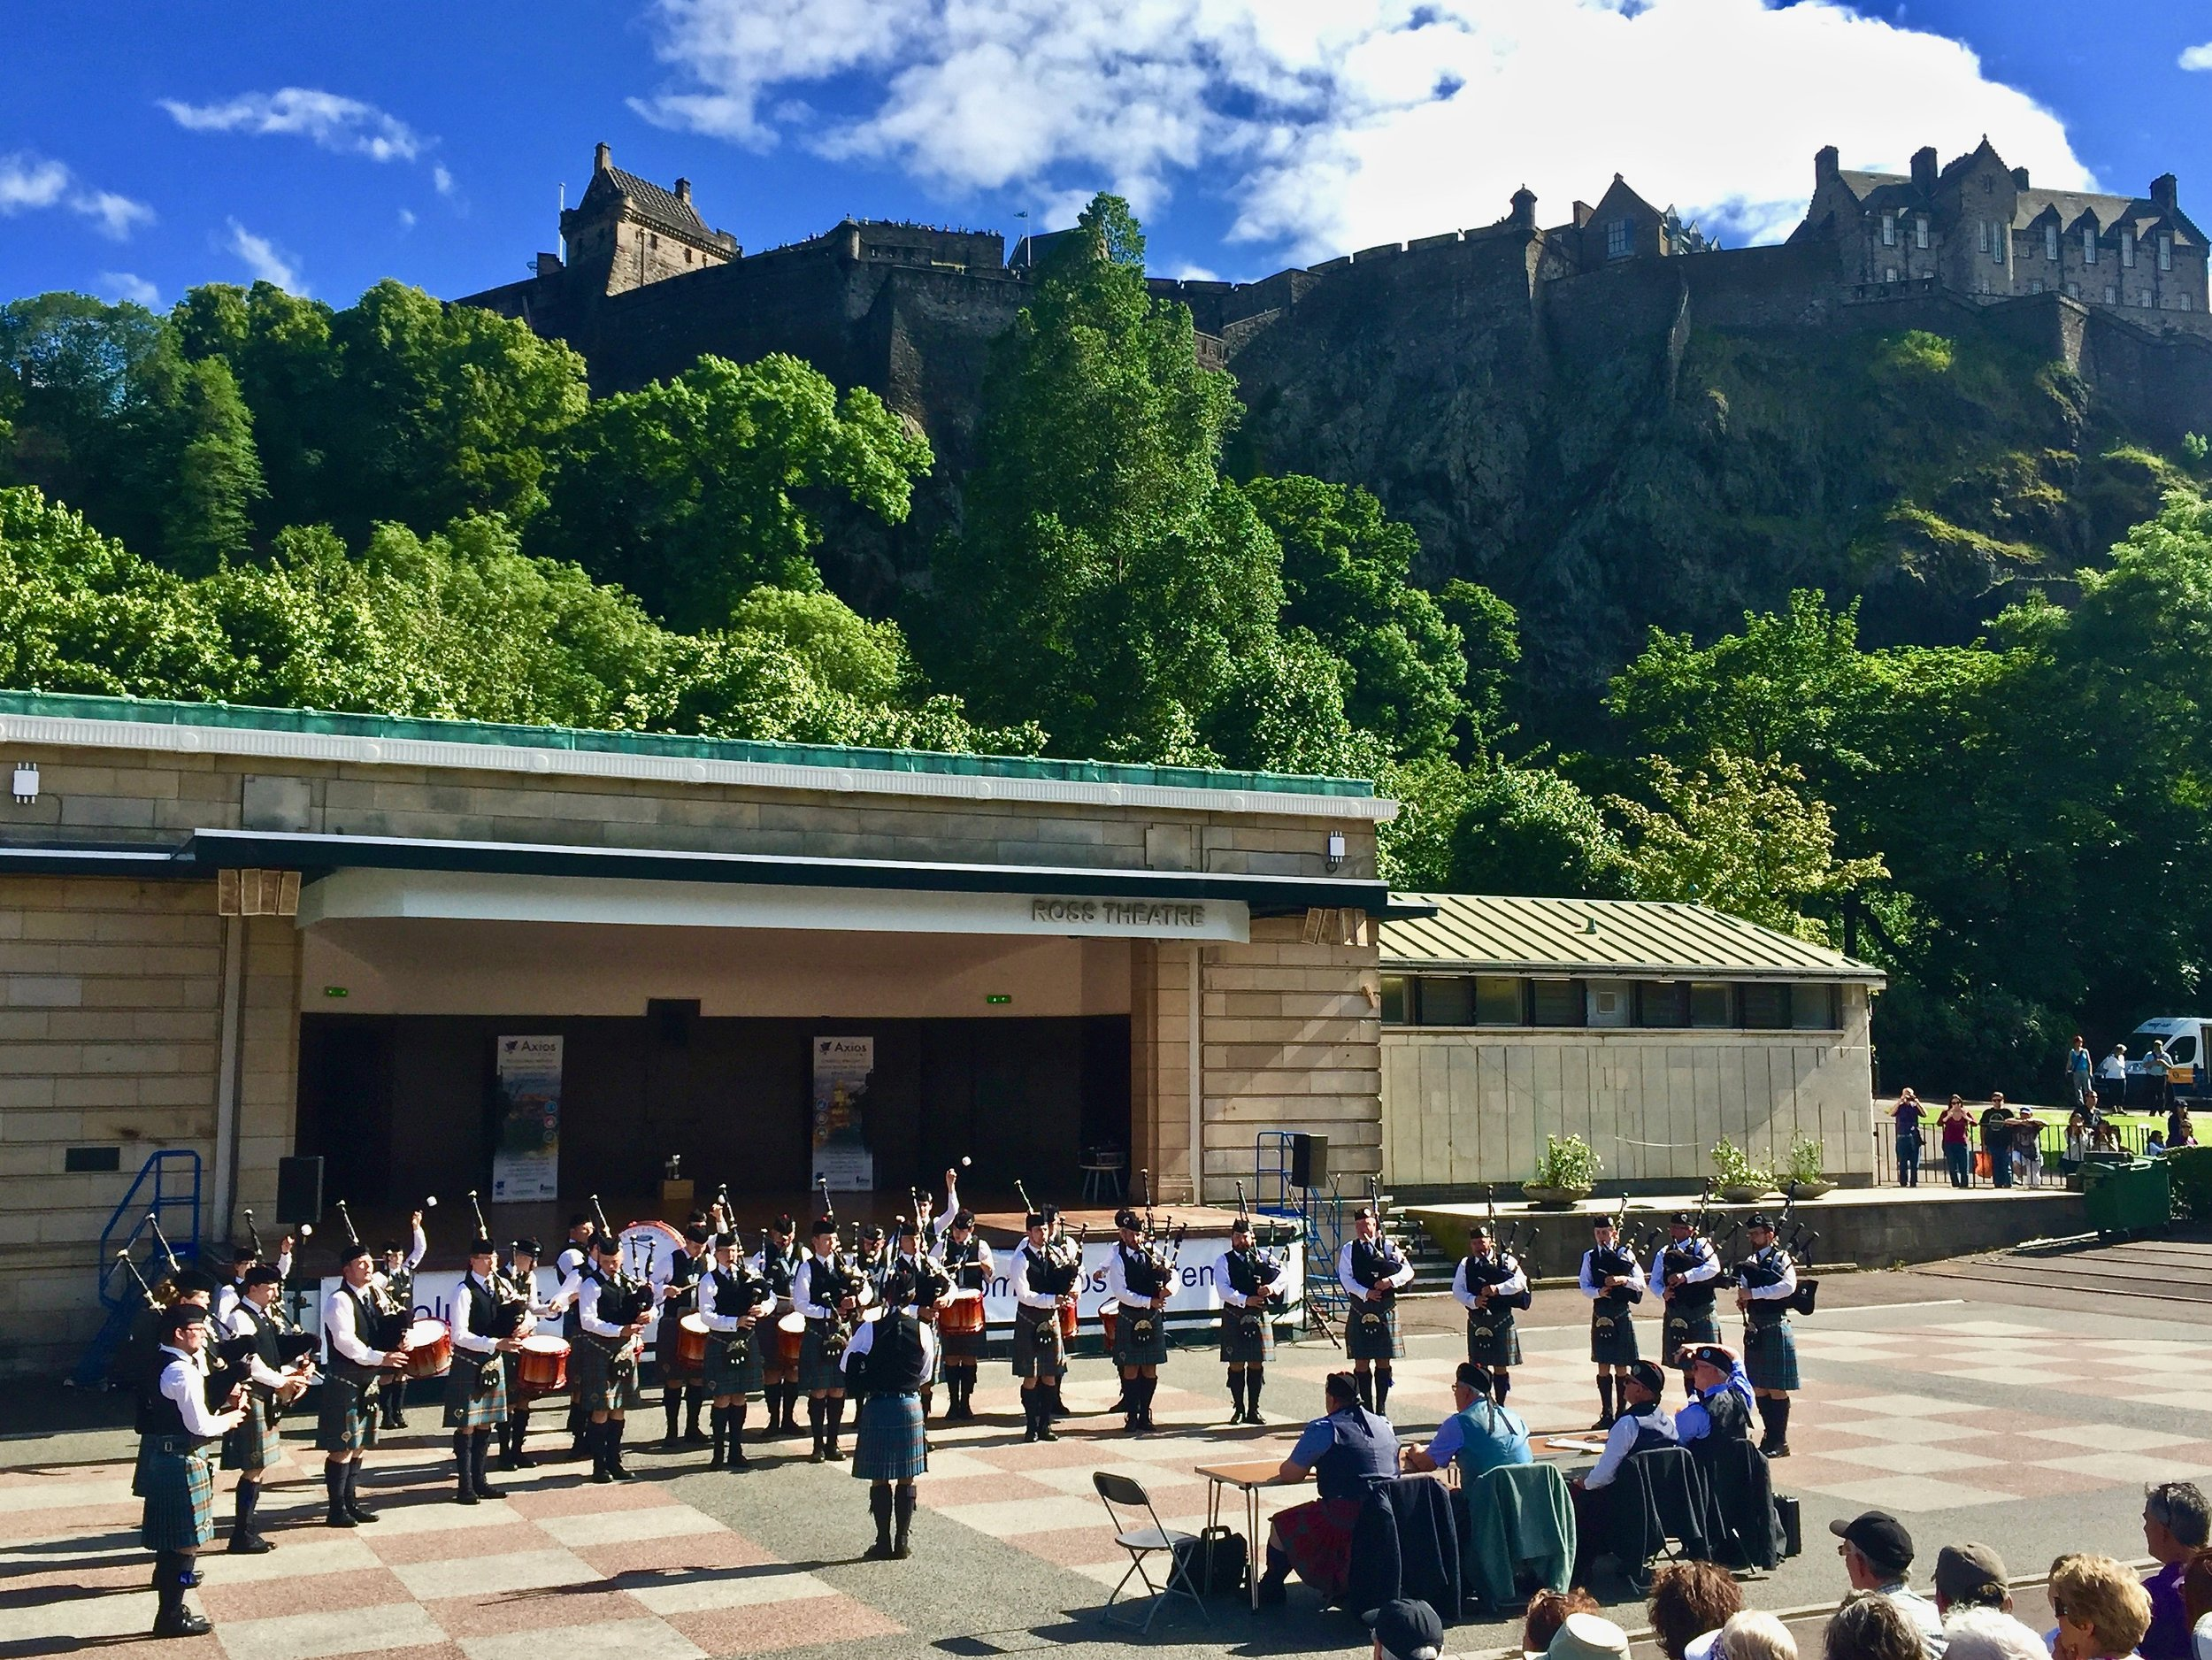 Boghall and Bathgate, Princes Street Gardens, June 2017